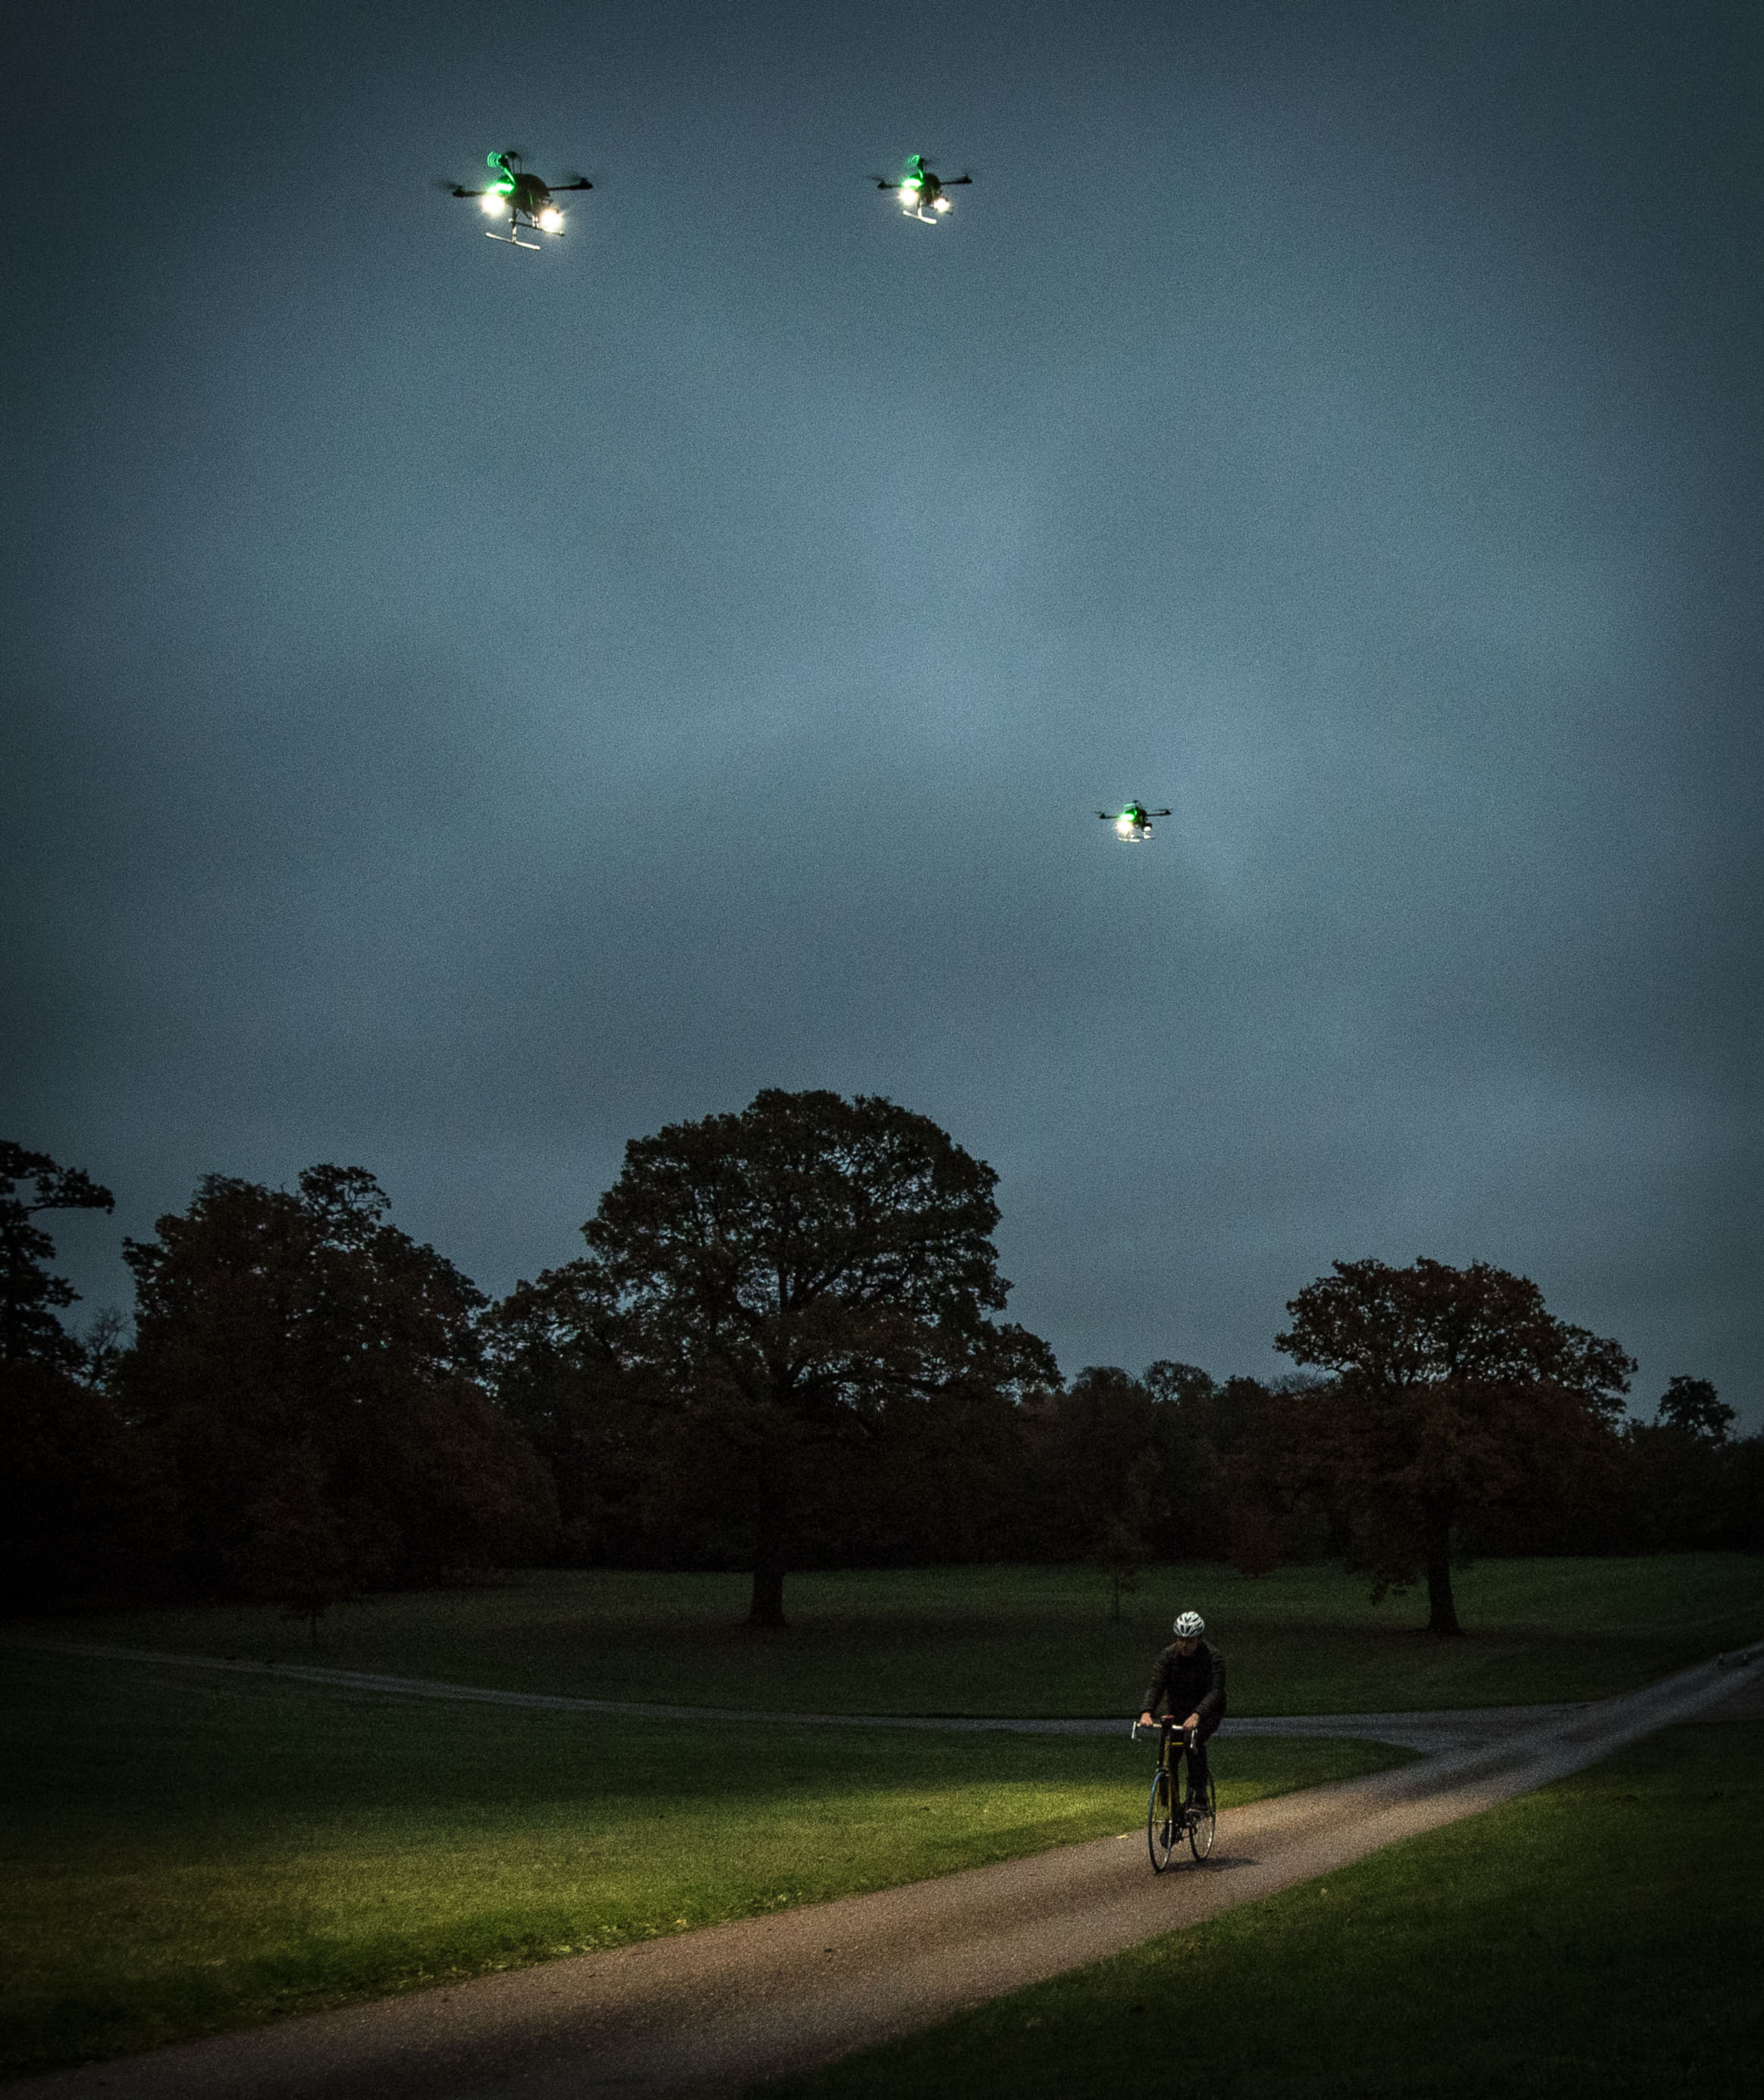 EMBARGOED TO 0001 WEDNESDAY NOVEMBER 16 EDITORIAL USE ONLY Cyclist Matt Ritz Wright during the launch of ÔFleetlightsÕ Ð a prototype range of smart drones fitted with high-powered lights, which have been designed by Direct Line and can be ordered by phone to improve road and pedestrian safety at night, at Borehamwood, Hertfordshire. PRESS ASSOCIATION Photo. Issue date: Wednesday November 16, 2016. The insurance provider has partnered with the drone technology specialists behind Mission Planner to create the prototype Fleetlights mobile phone app, which makes it simple to control the service and track your journey using your GPS location. The software is the first time the ÔLight my WayÕ functionality - which tracks and maintains a fixed distance ahead of a subject, rather than behind - has been used. Photo credit should read: John Nguyen/PA Wire